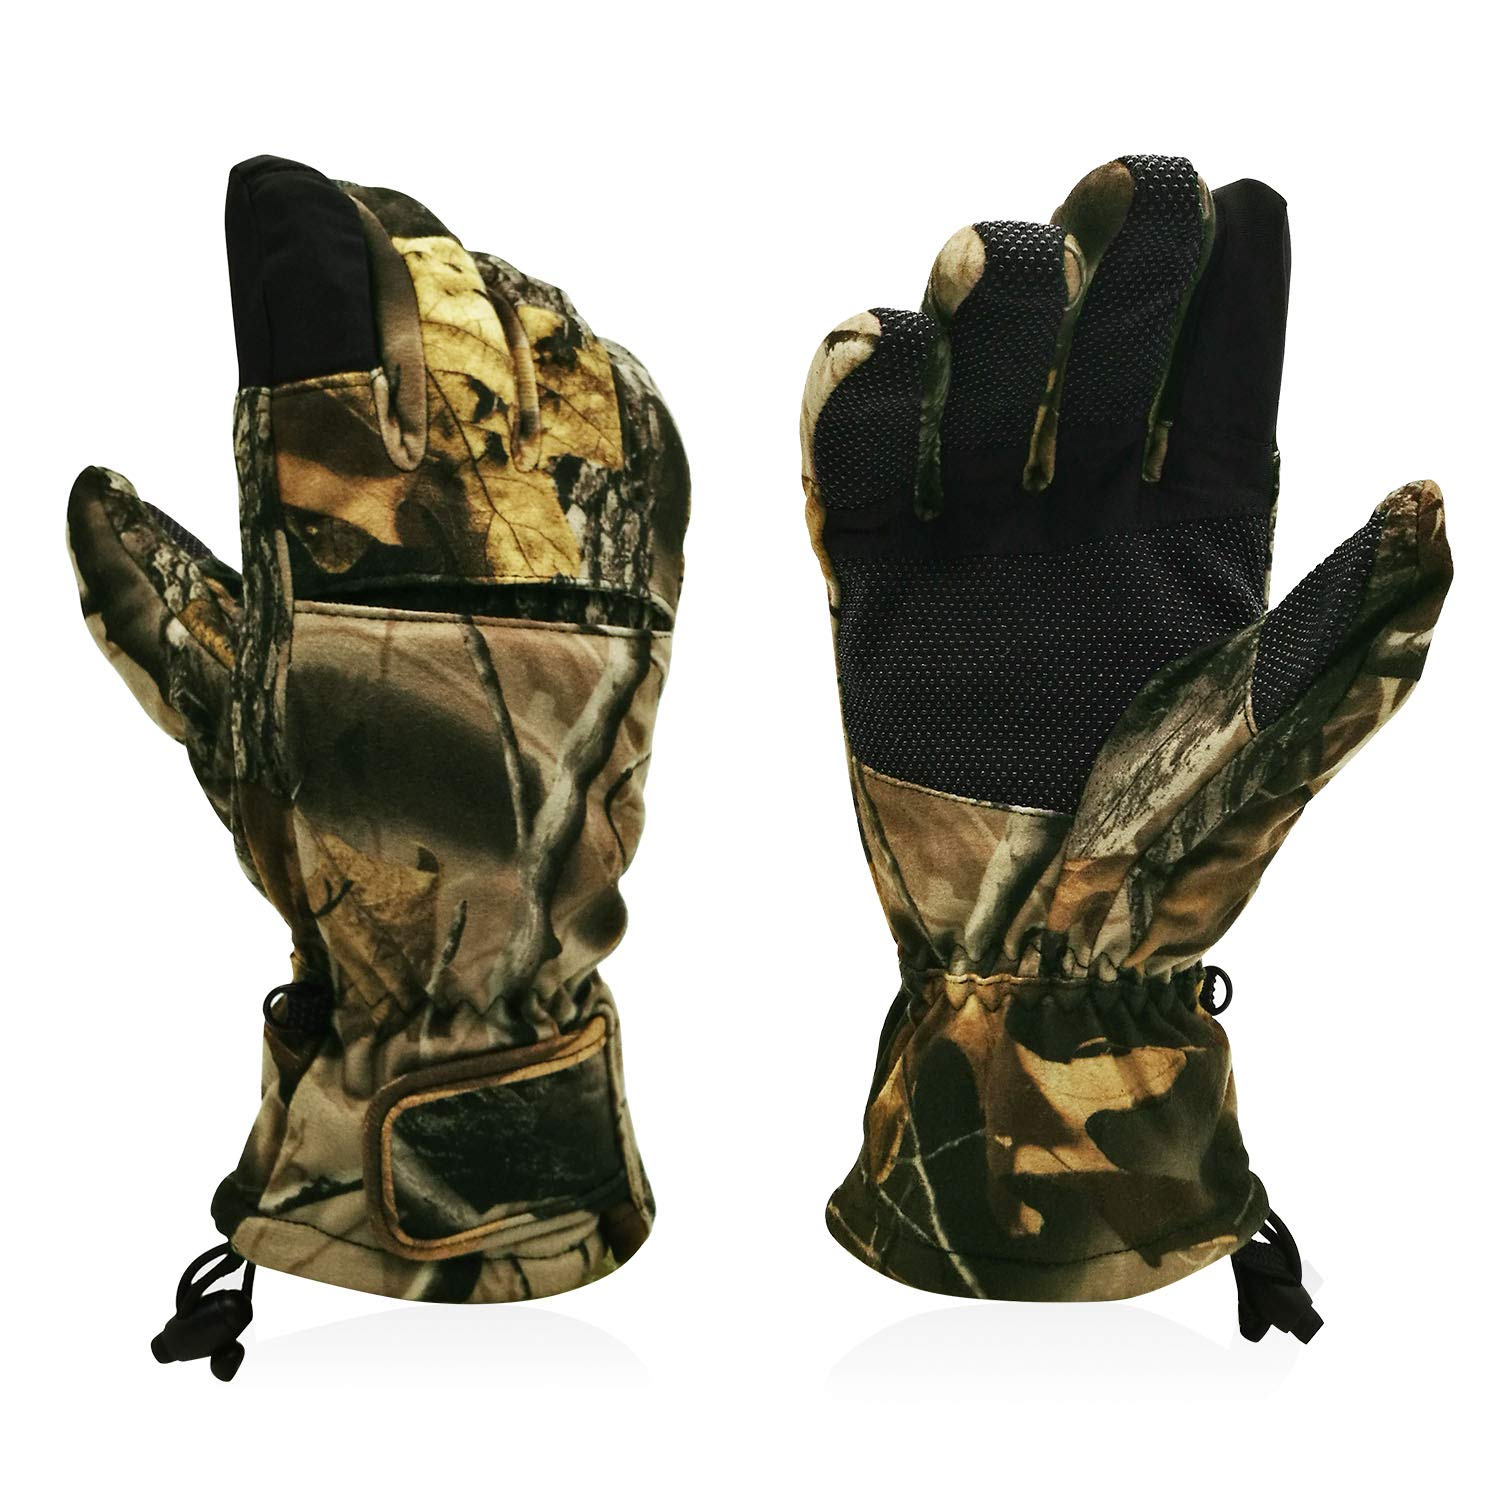 Intra-FIT Stretch-Fit Warm Hunting Gloves